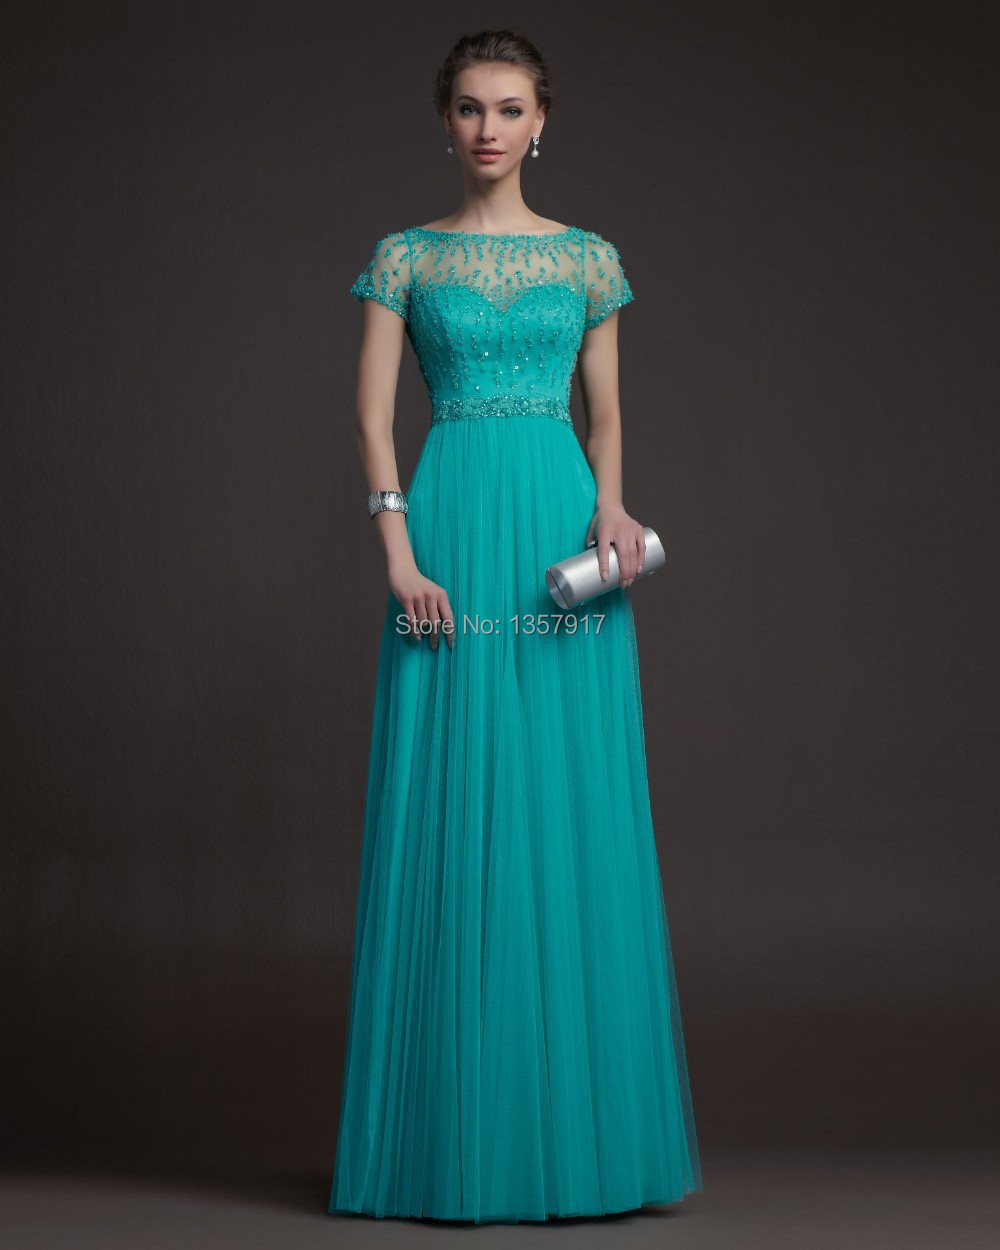 Online Get Cheap Teal Evening Gown -Aliexpress.com | Alibaba Group